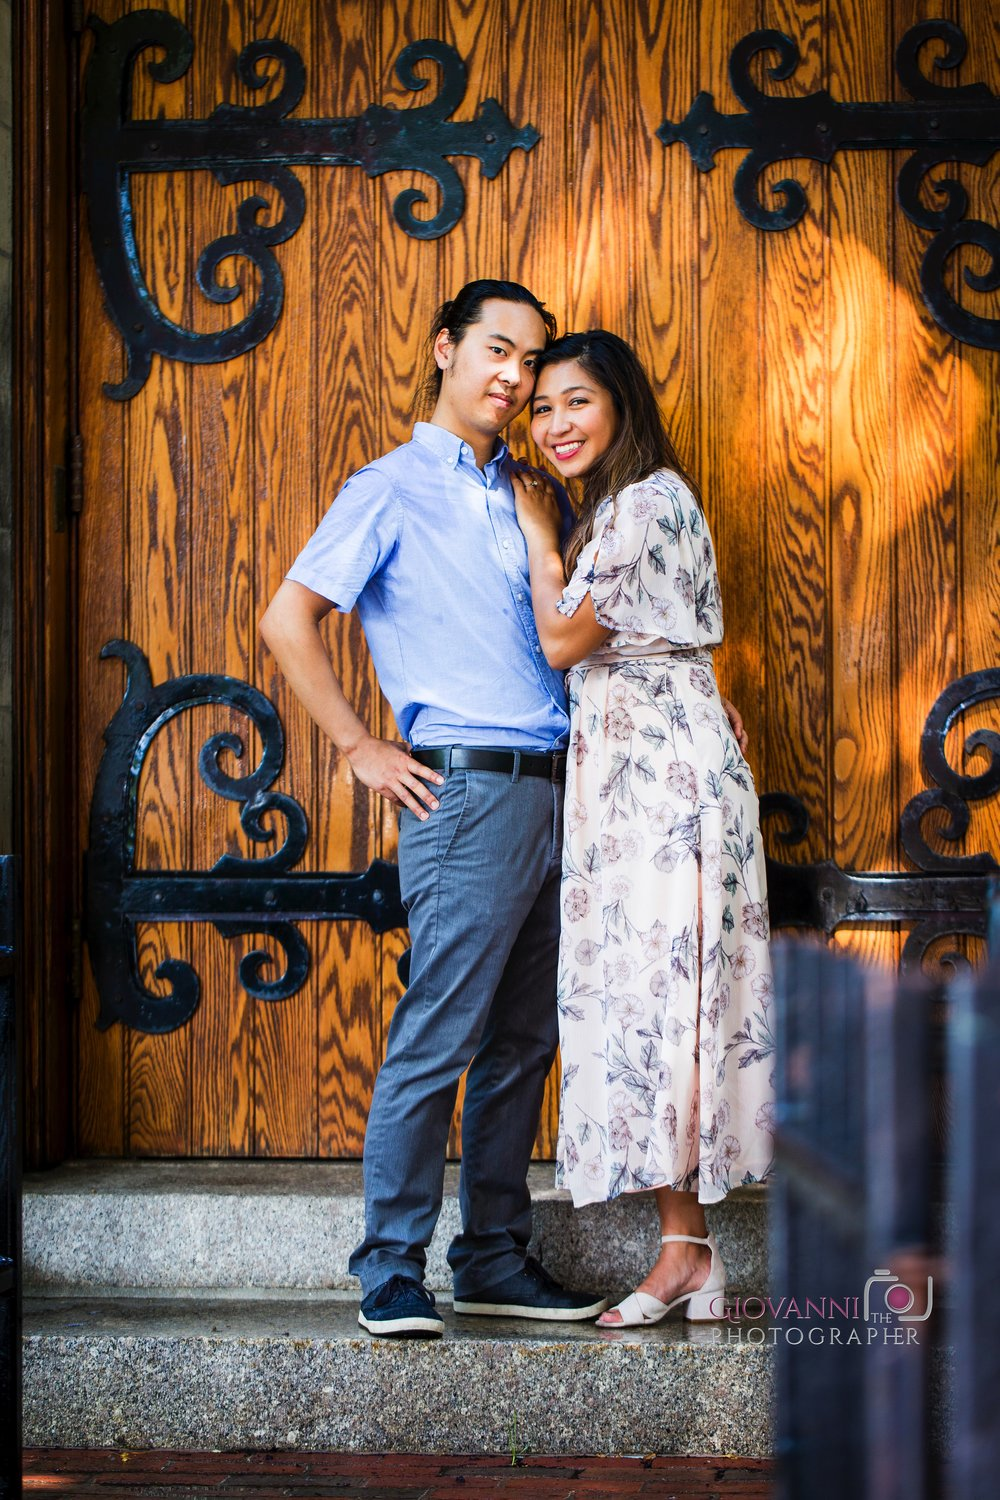 314A4554 Giovanni The Photographer Boston Engagement Session Mass Ave Street Photography Diana and Felix WM100.jpg